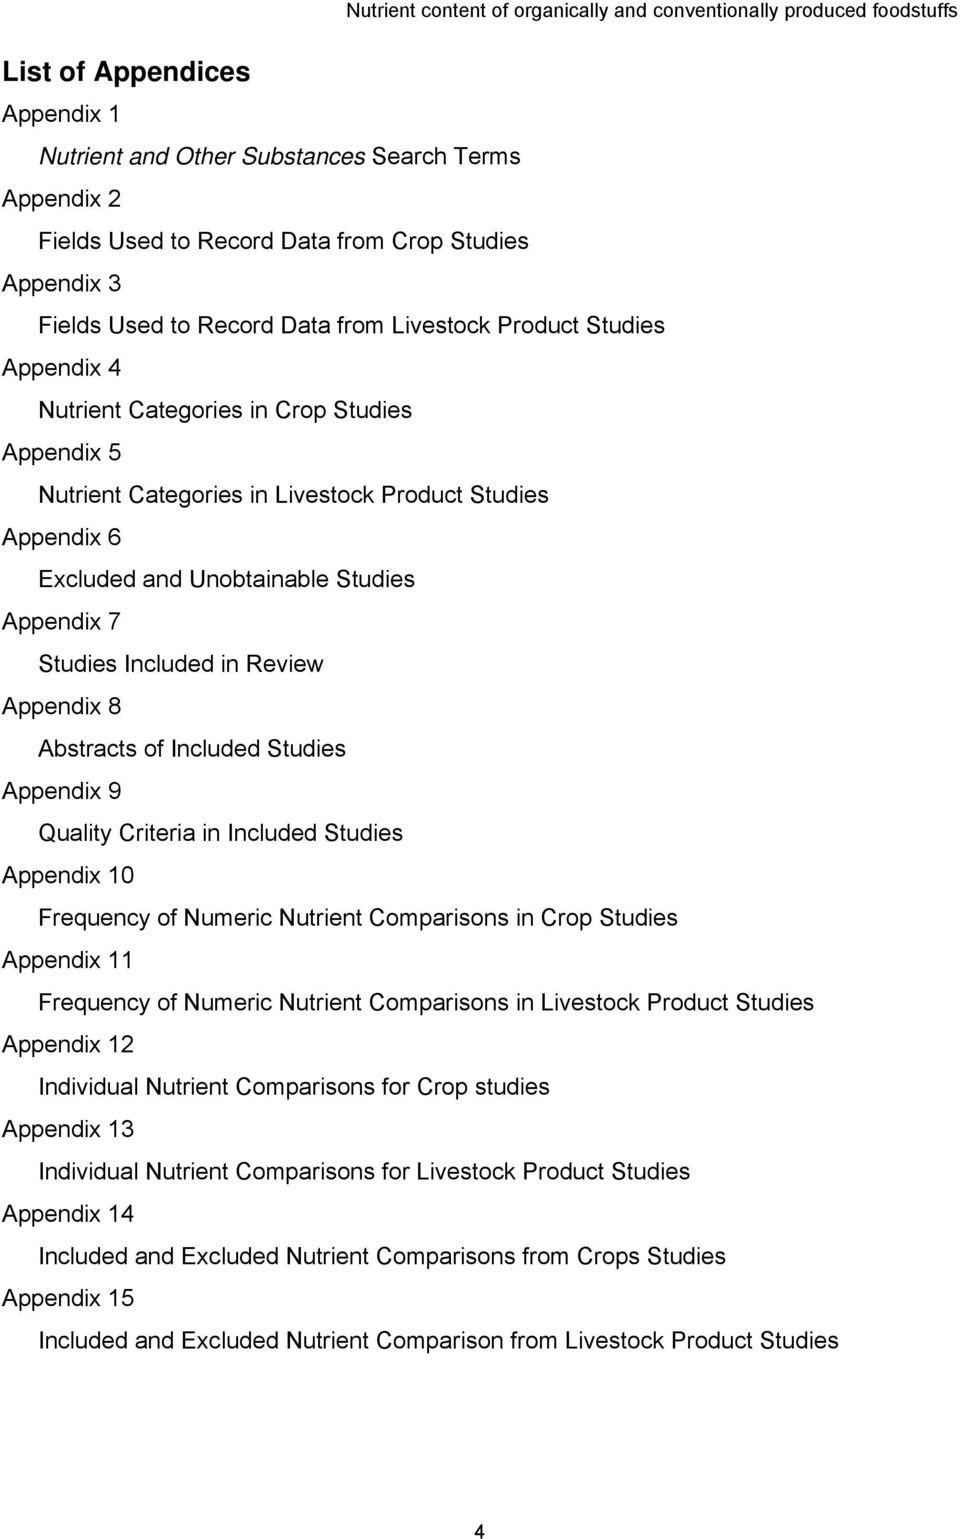 Appendi 7 Studies Included in Review Appendi 8 Abstracts f Included Studies Appendi 9 Quality Criteria in Included Studies Appendi 10 Frequency f Numeric Nutrient Cmparisns in Crp Studies Appendi 11